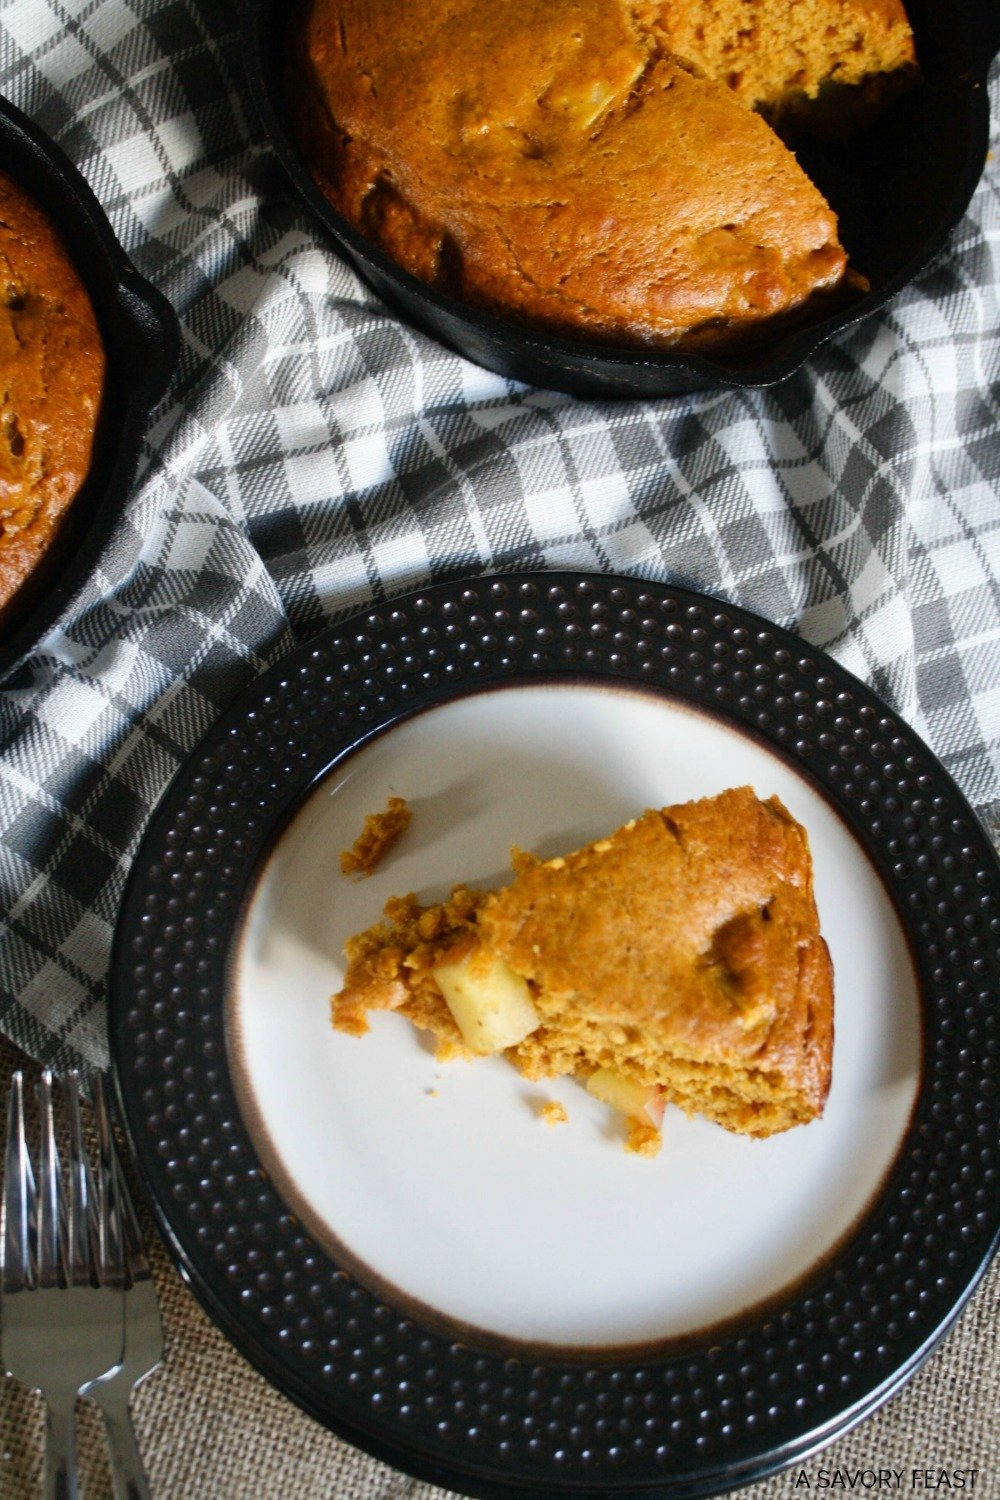 Pumpkin and apple come together in this beautiful skillet cake. It's a light, fluffy cake that has just the right amount of sweetness. Celebrate Fall with this delicious dessert!